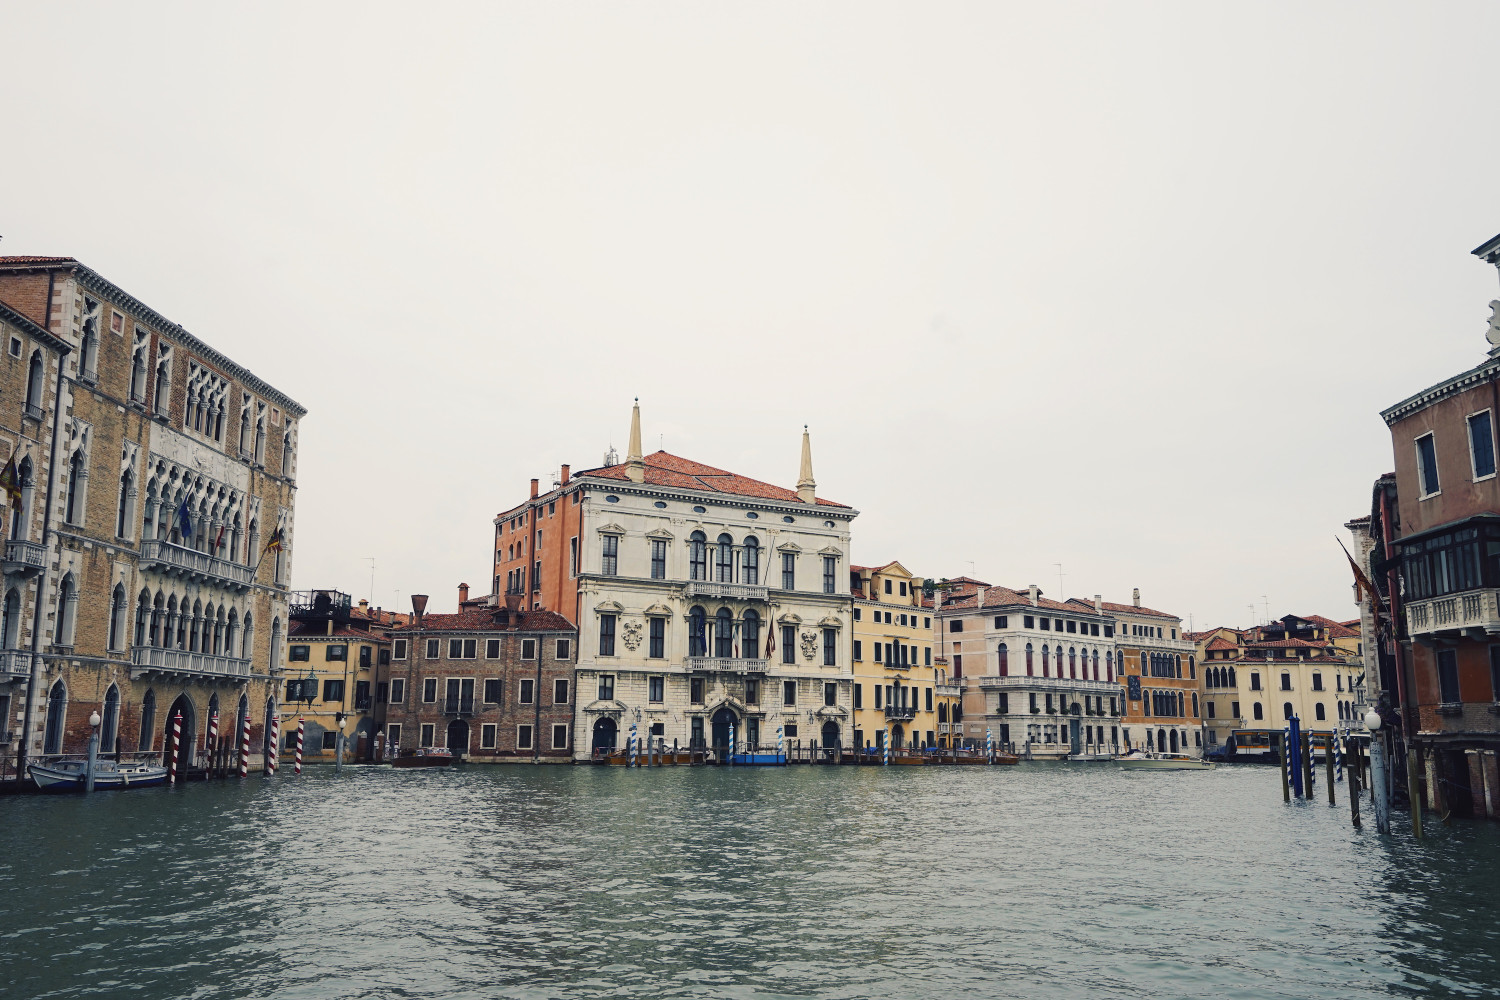 venice-grand-canal-landscape-dante-vincent-photography